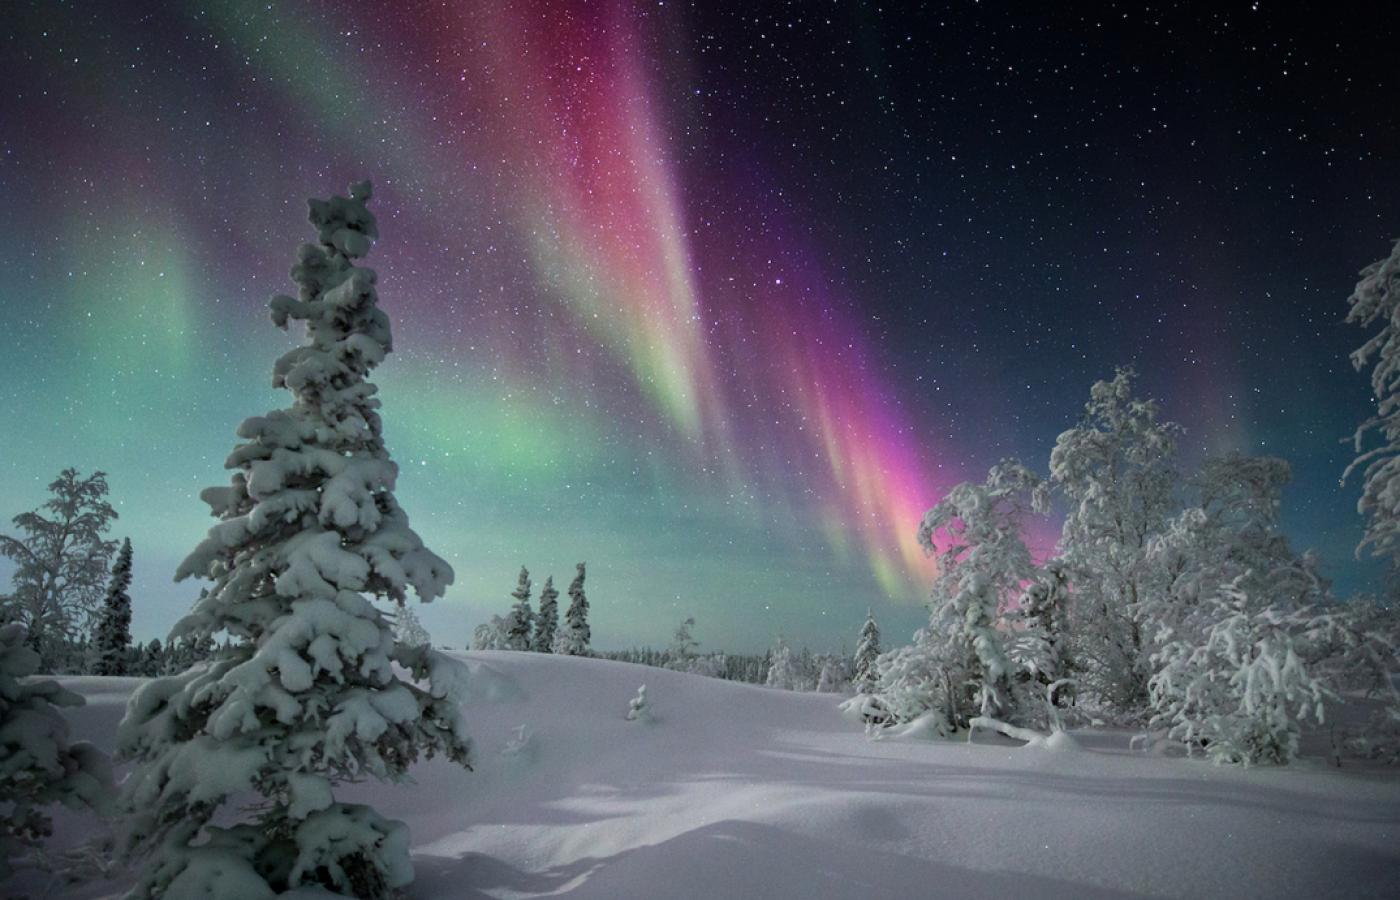 The magic and wonder of the Northern Lights in Canada's Northwest Territories